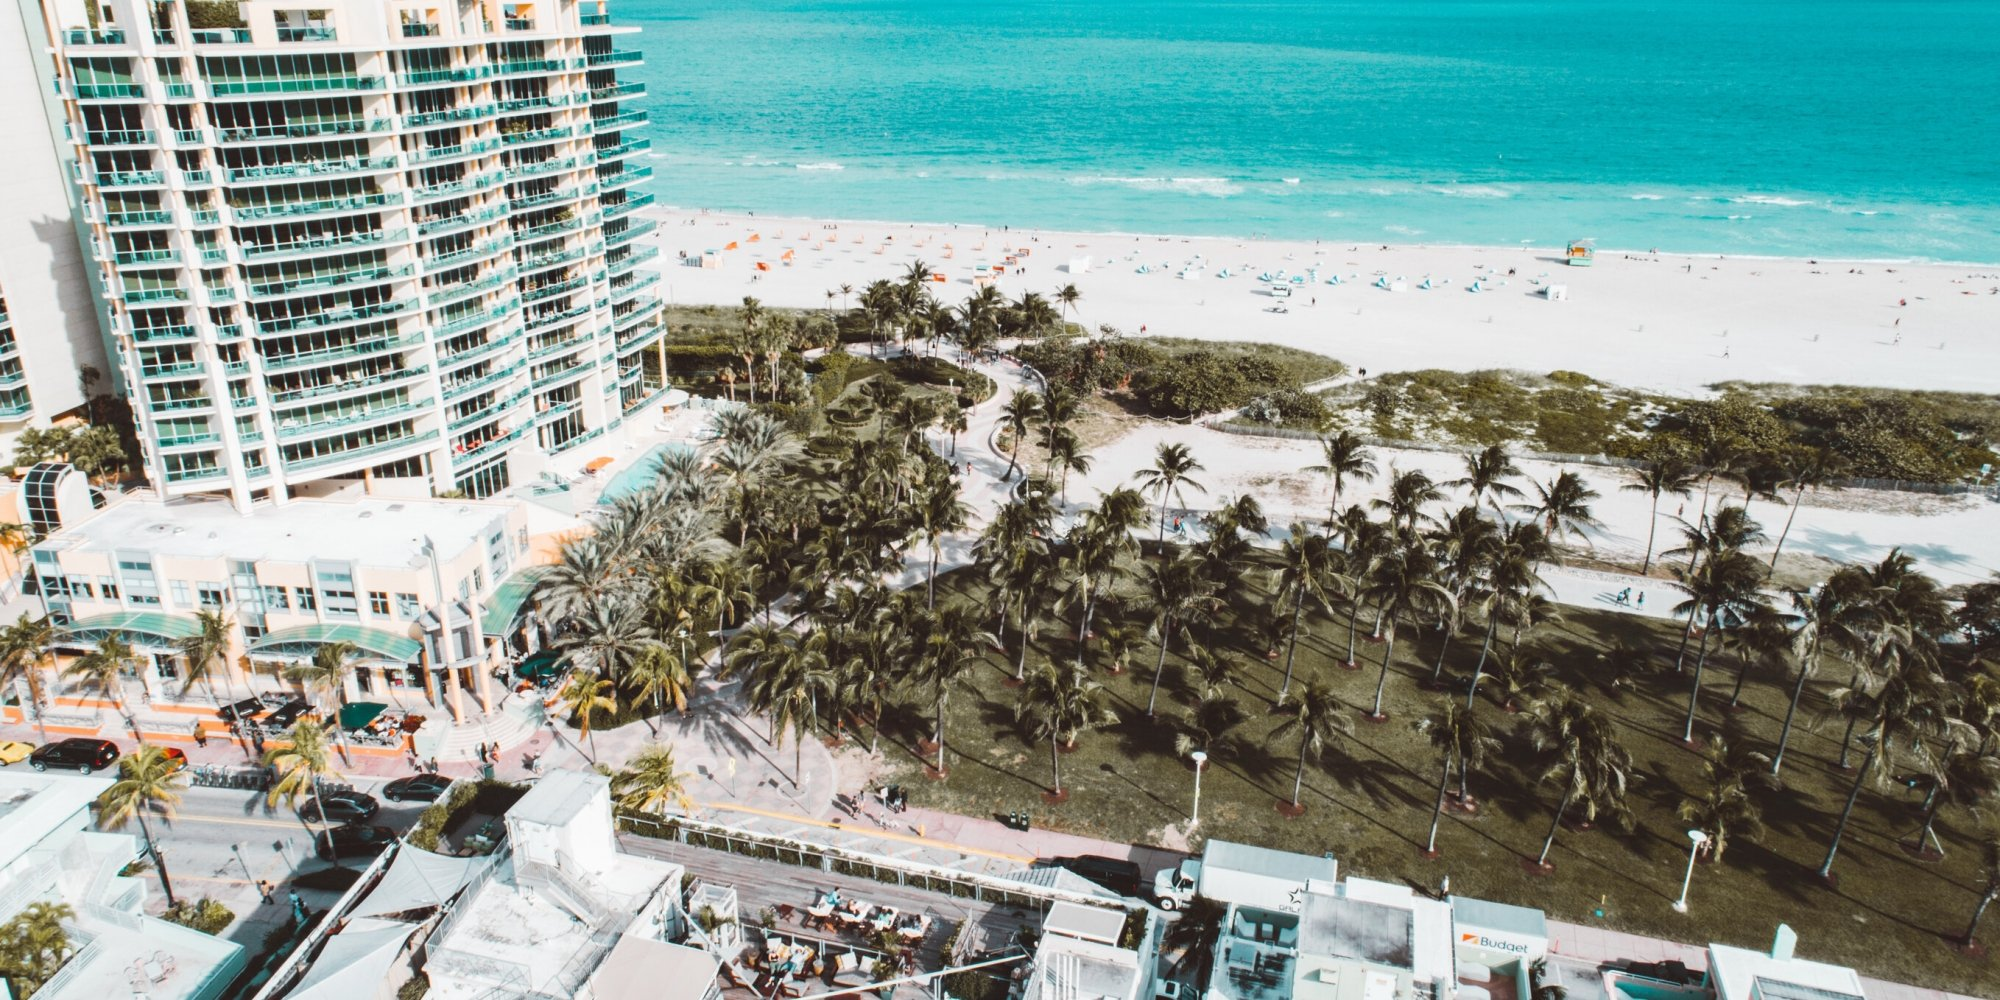 Drone photo overlooking Miami Beach with building, water, and palm trees.